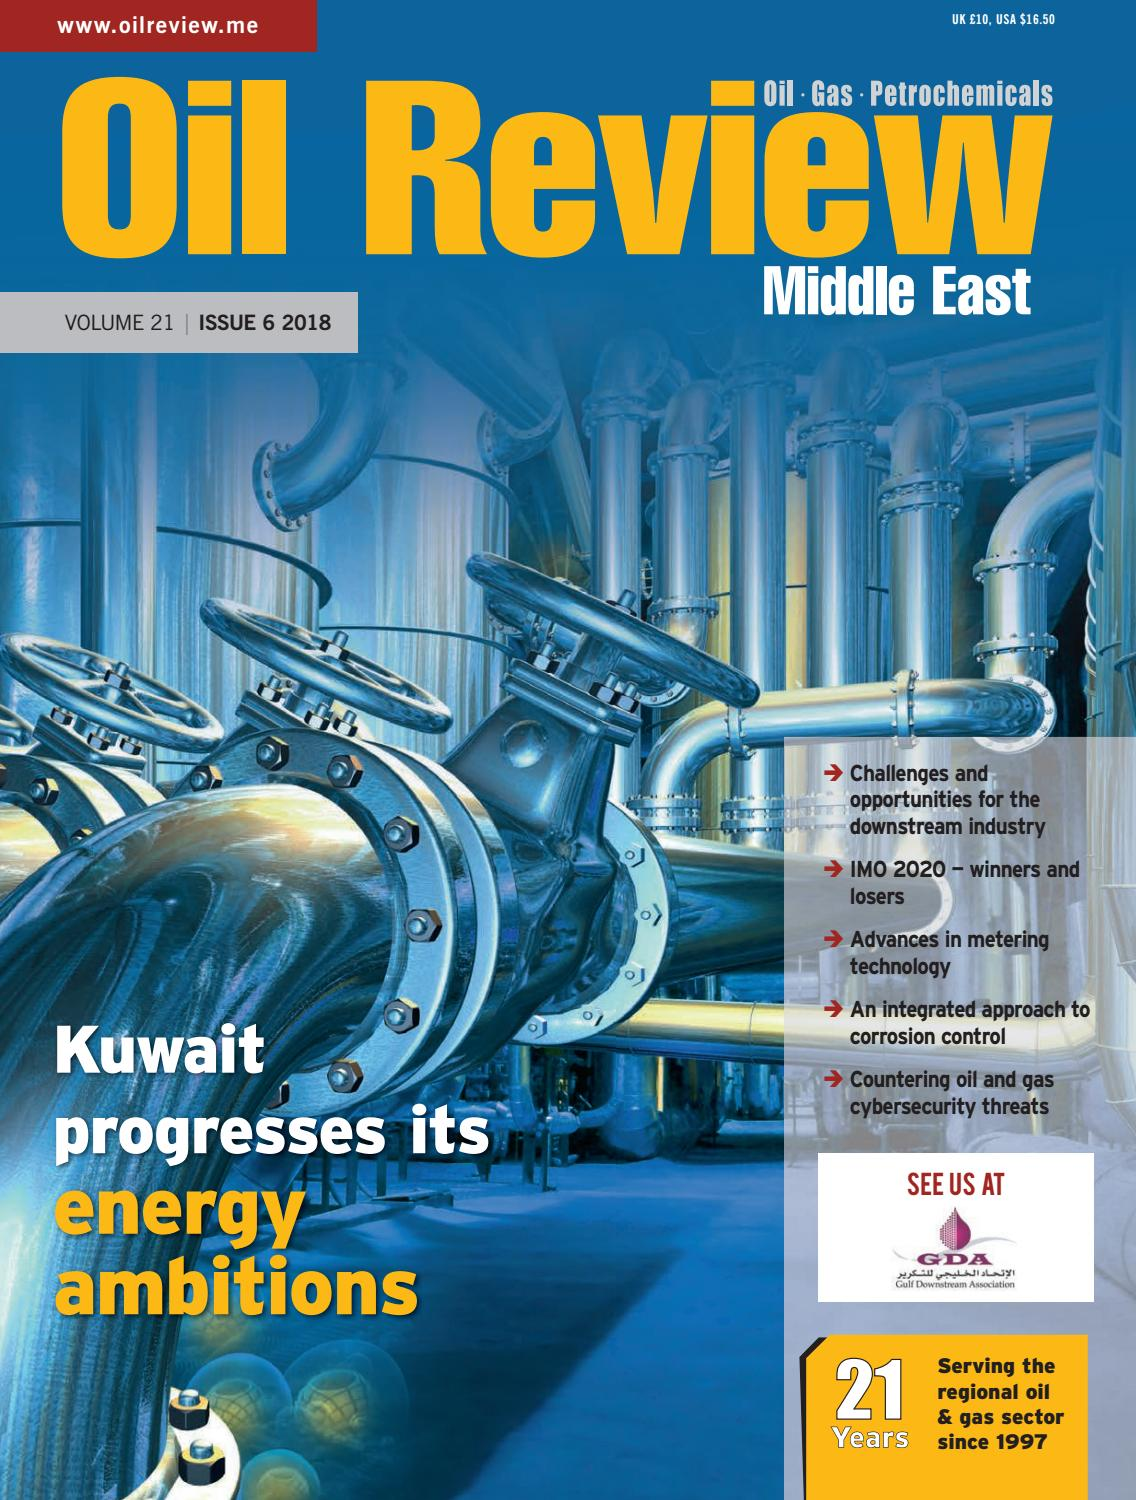 Oil Review Middle East Issue 6 2018 by Alain Charles